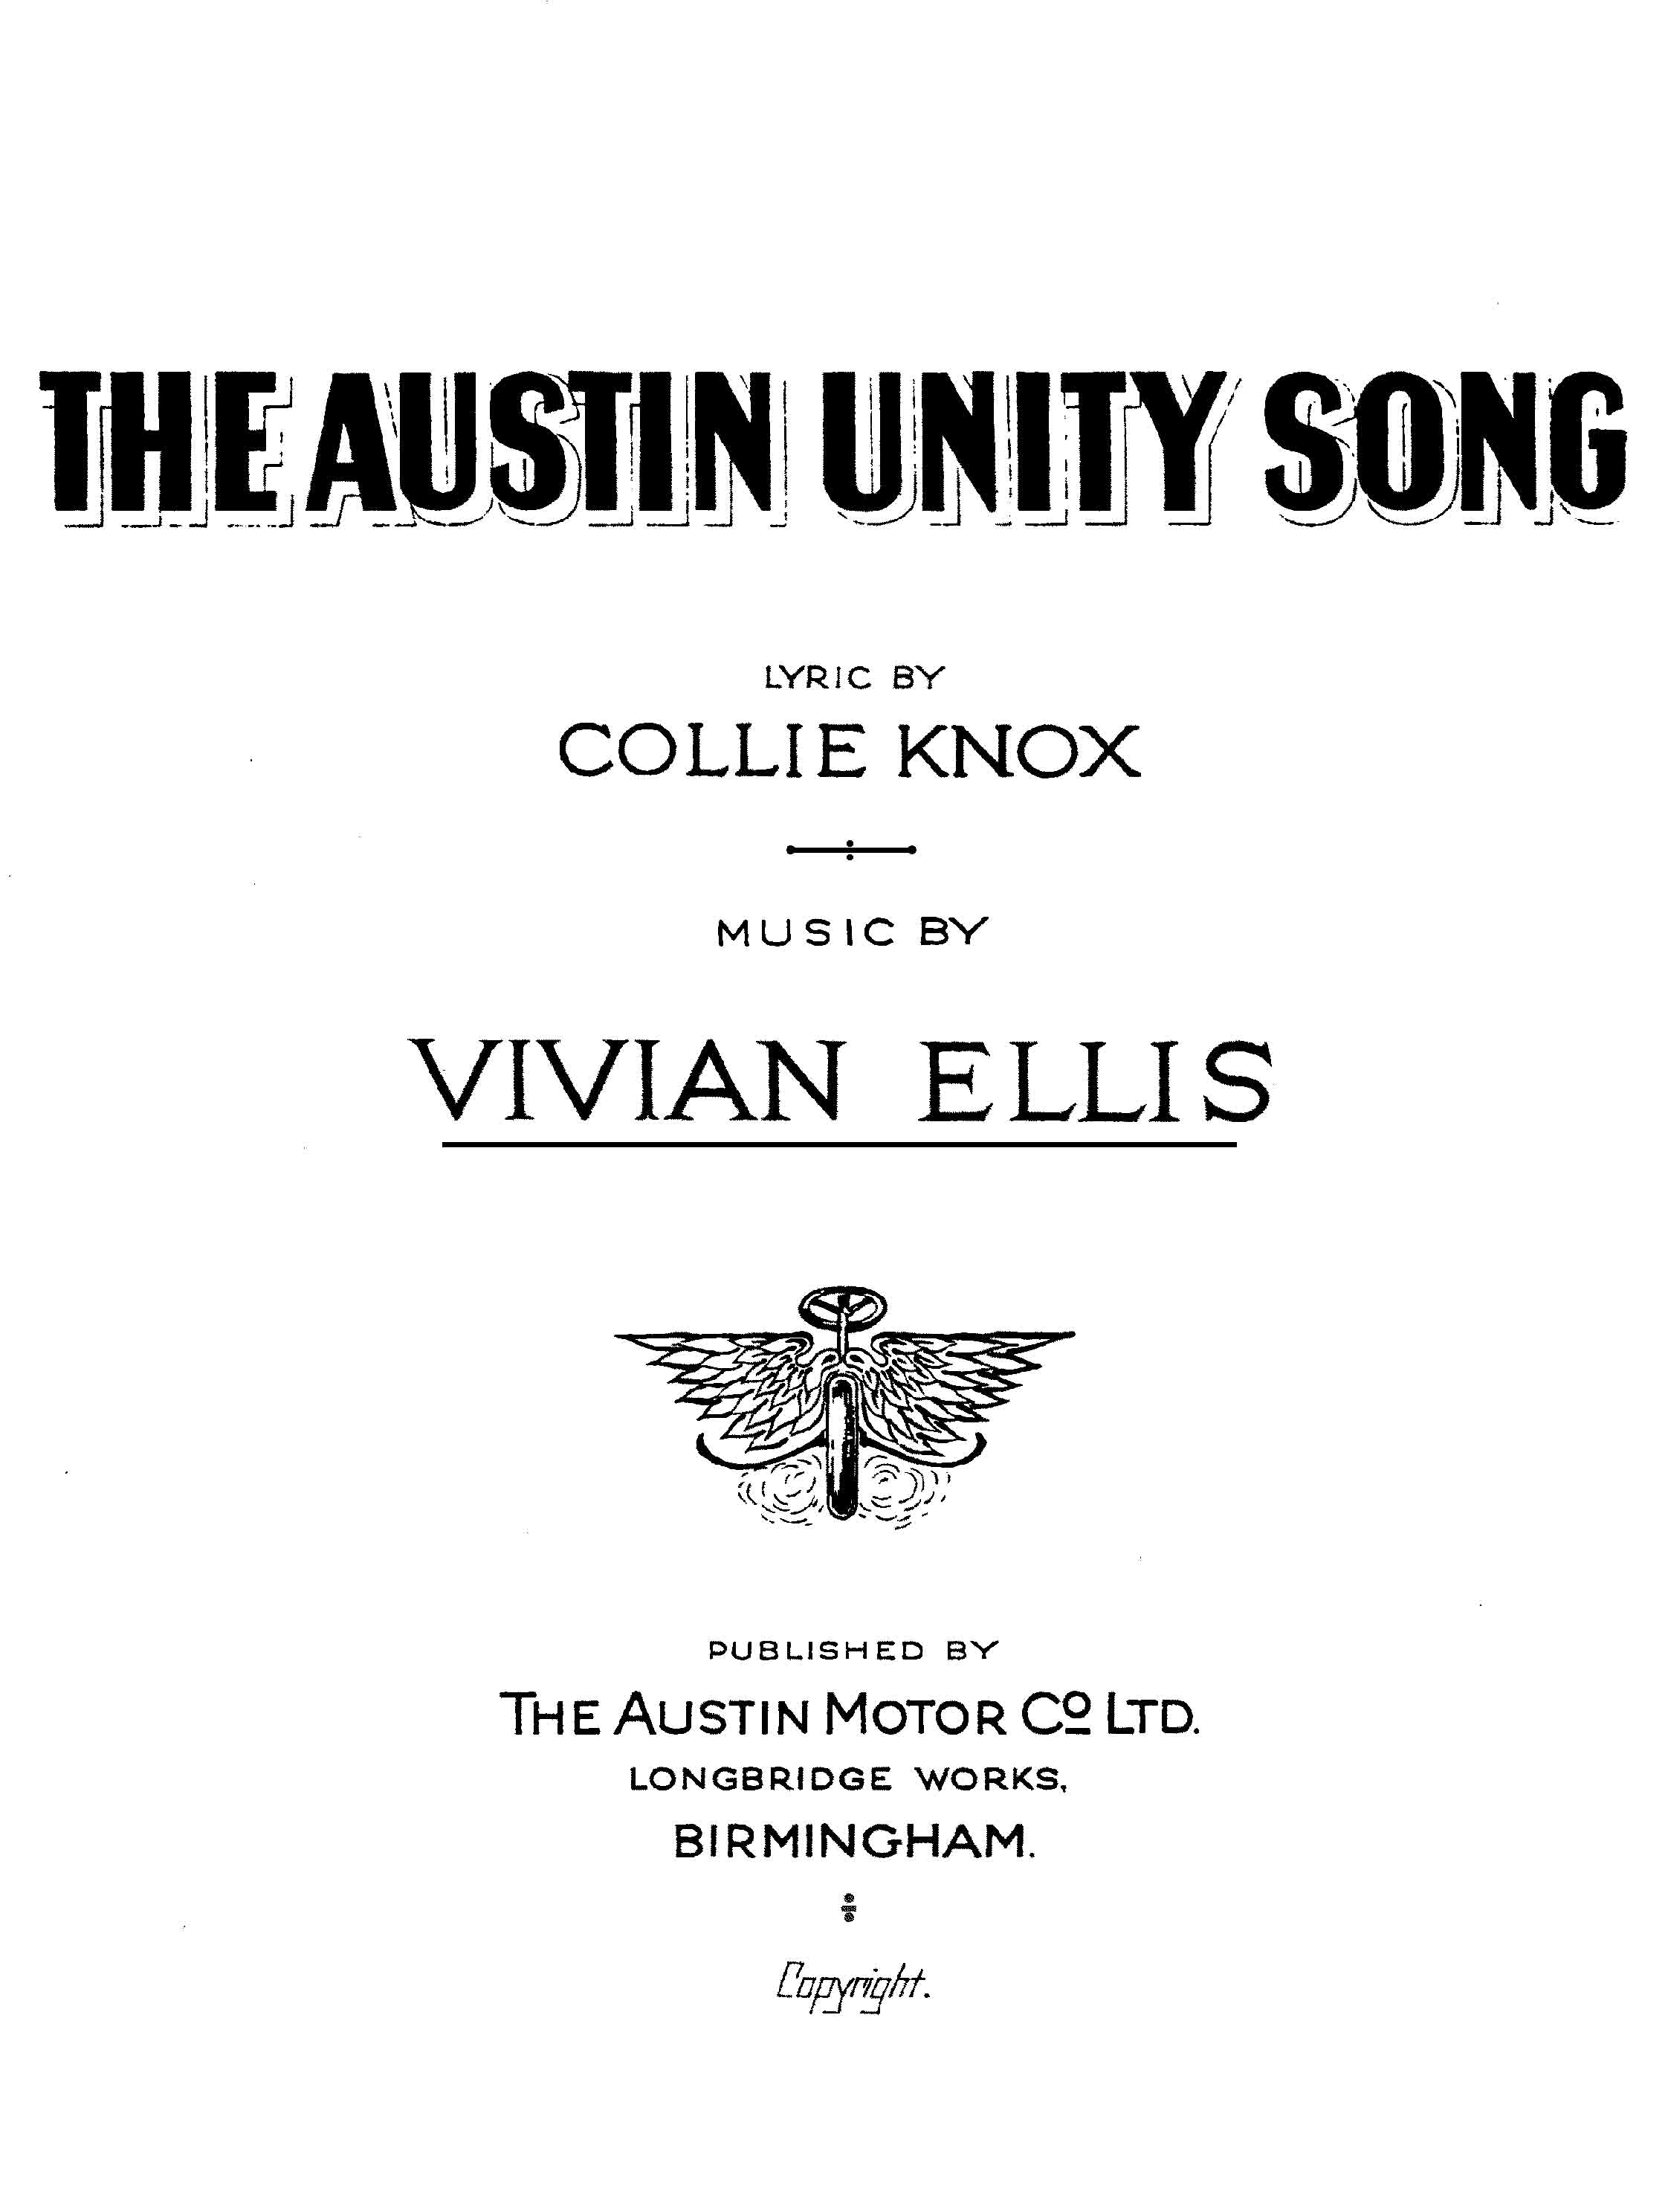 The Austin Unity Song